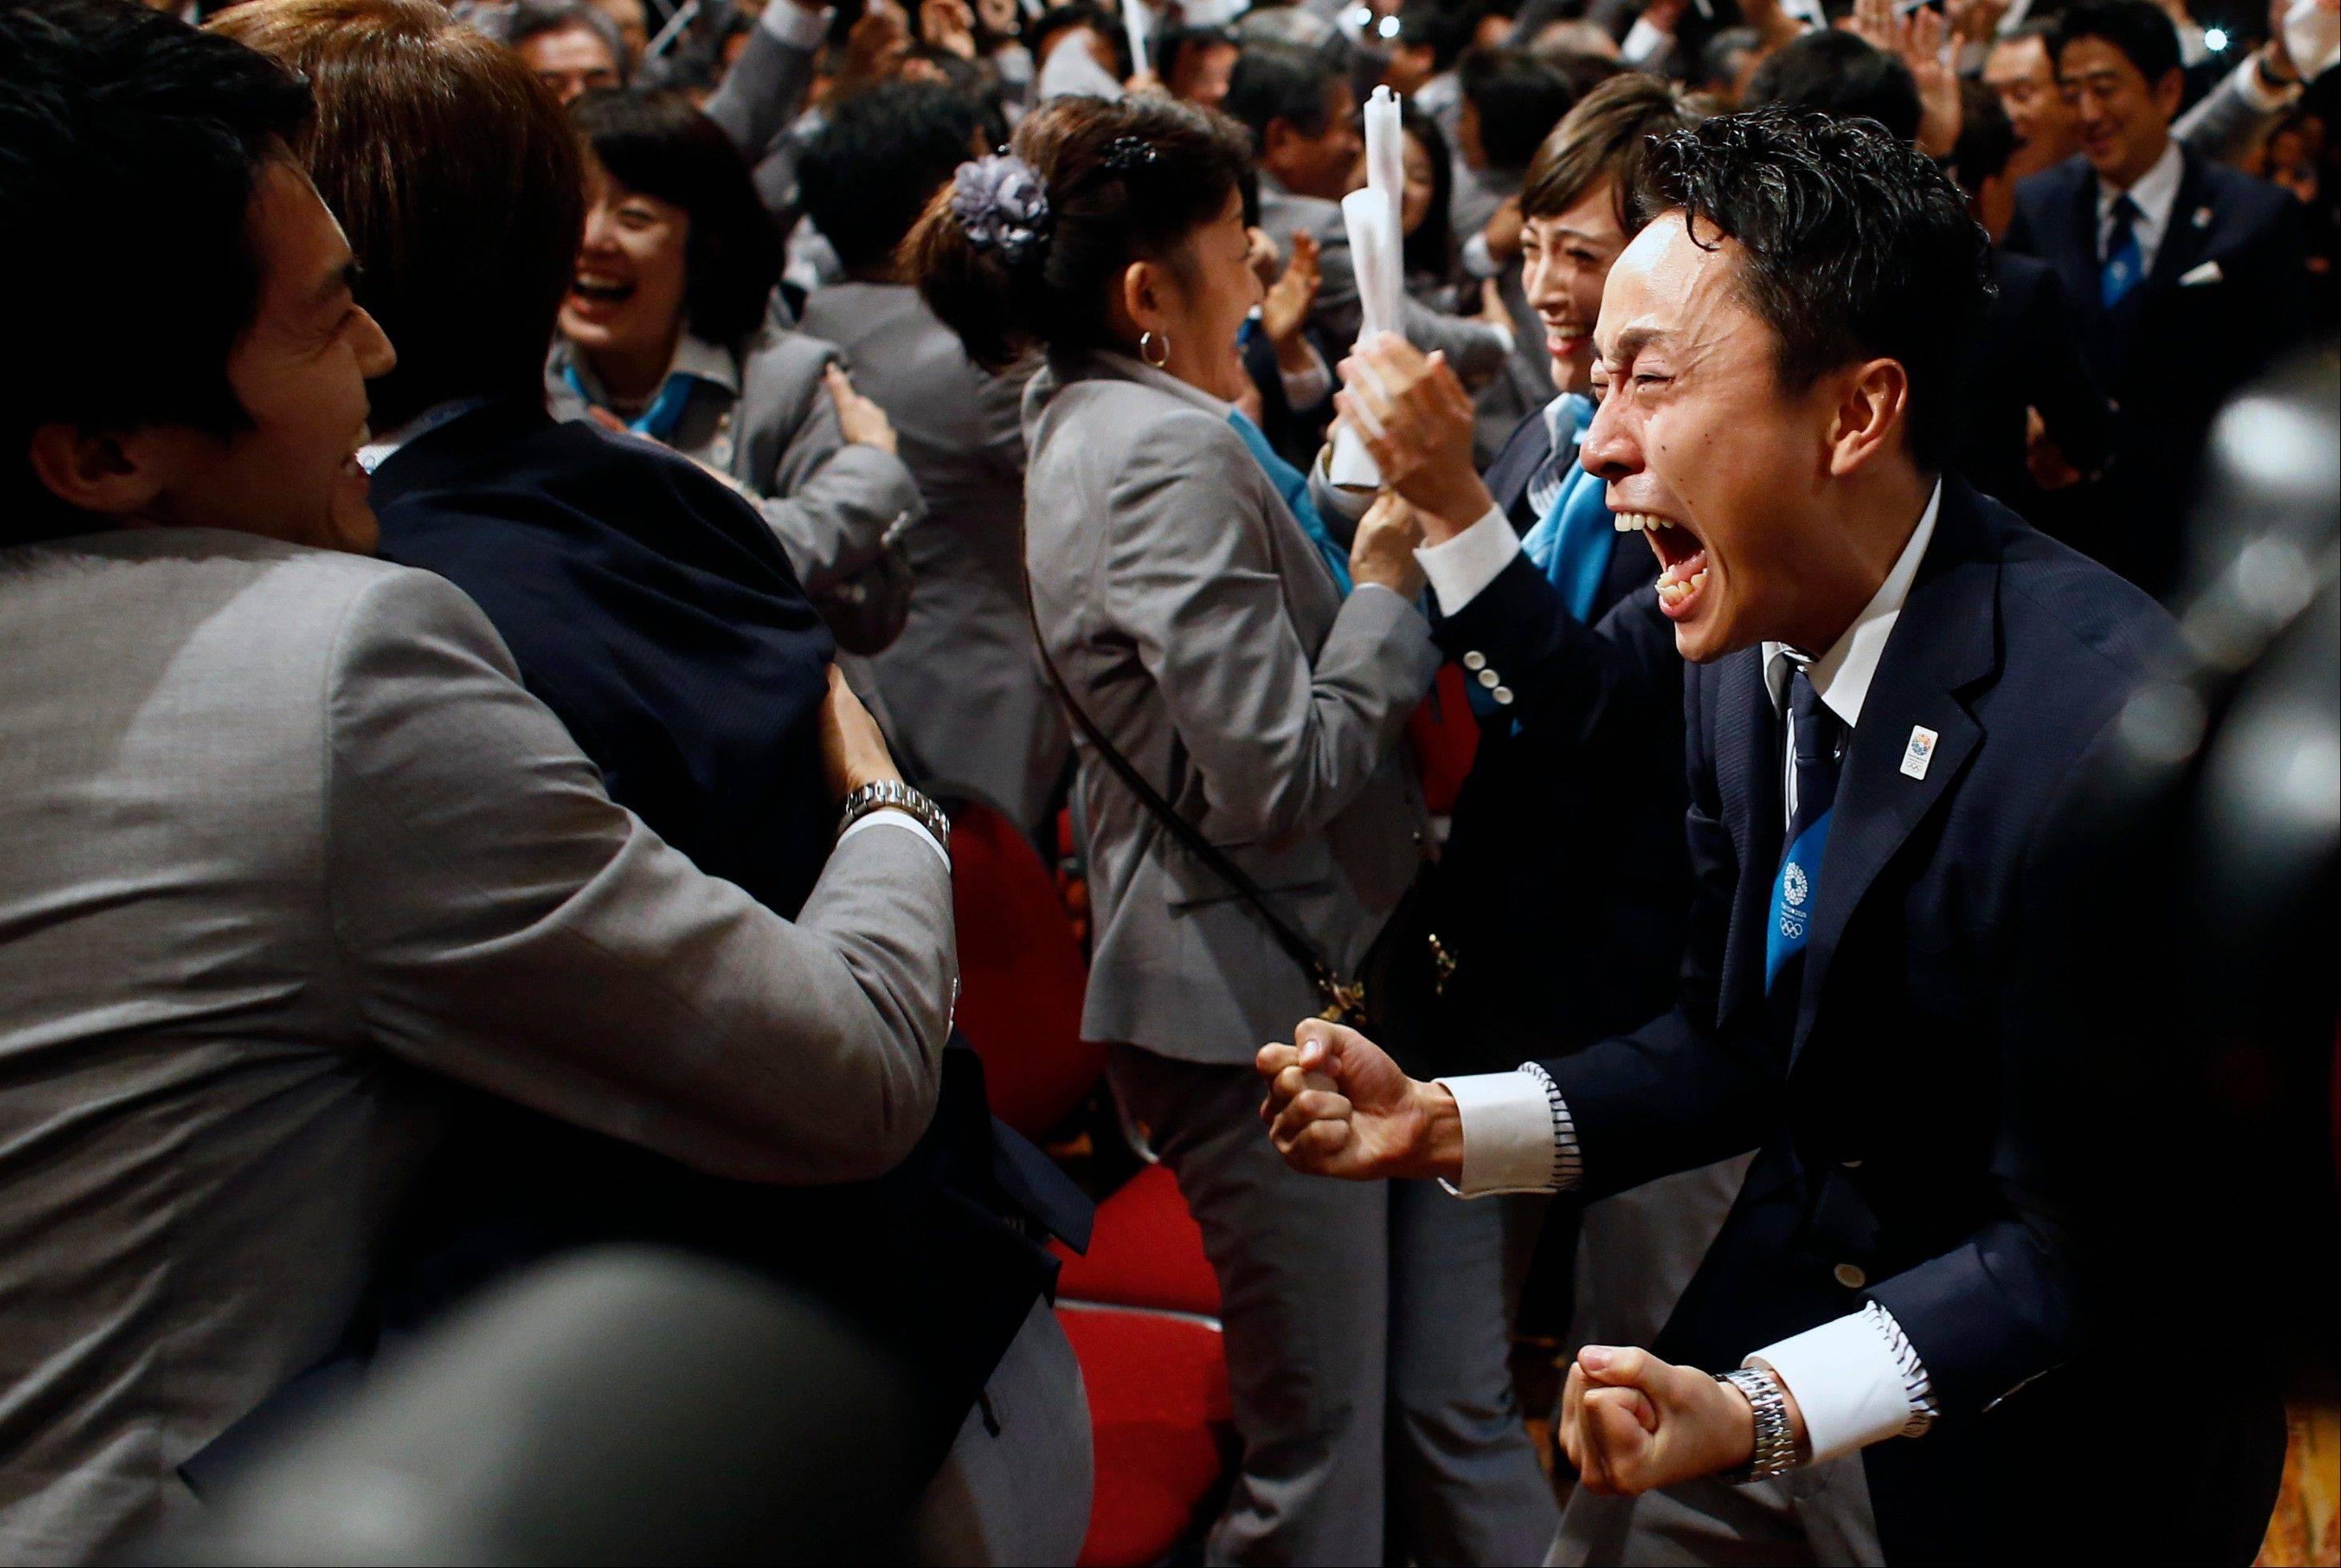 Members of the Tokyo 2020 delegation celebrate after Tokyo was awarded the 2020 Olympic Games on Saturday in Buenos Aires, Argentina.